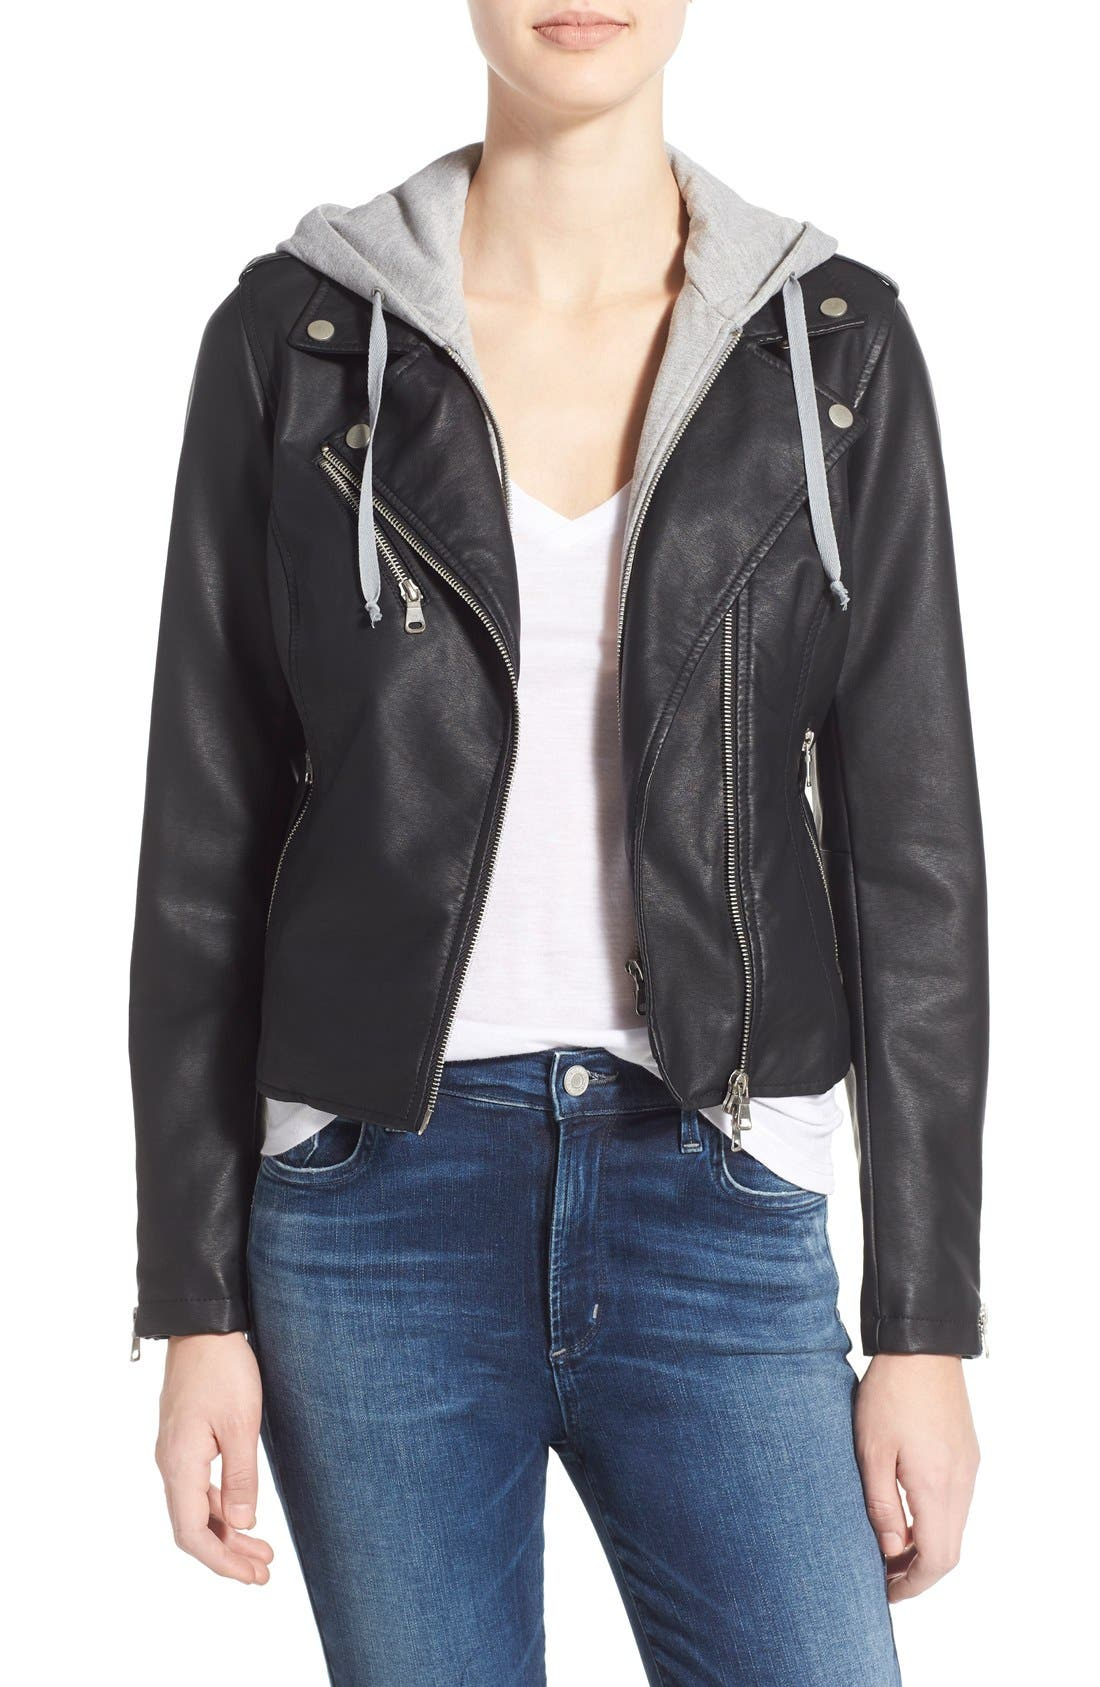 Alternate Image 1 Selected - Thread & Supply 'Eclipse' Hooded Faux Leather Jacket